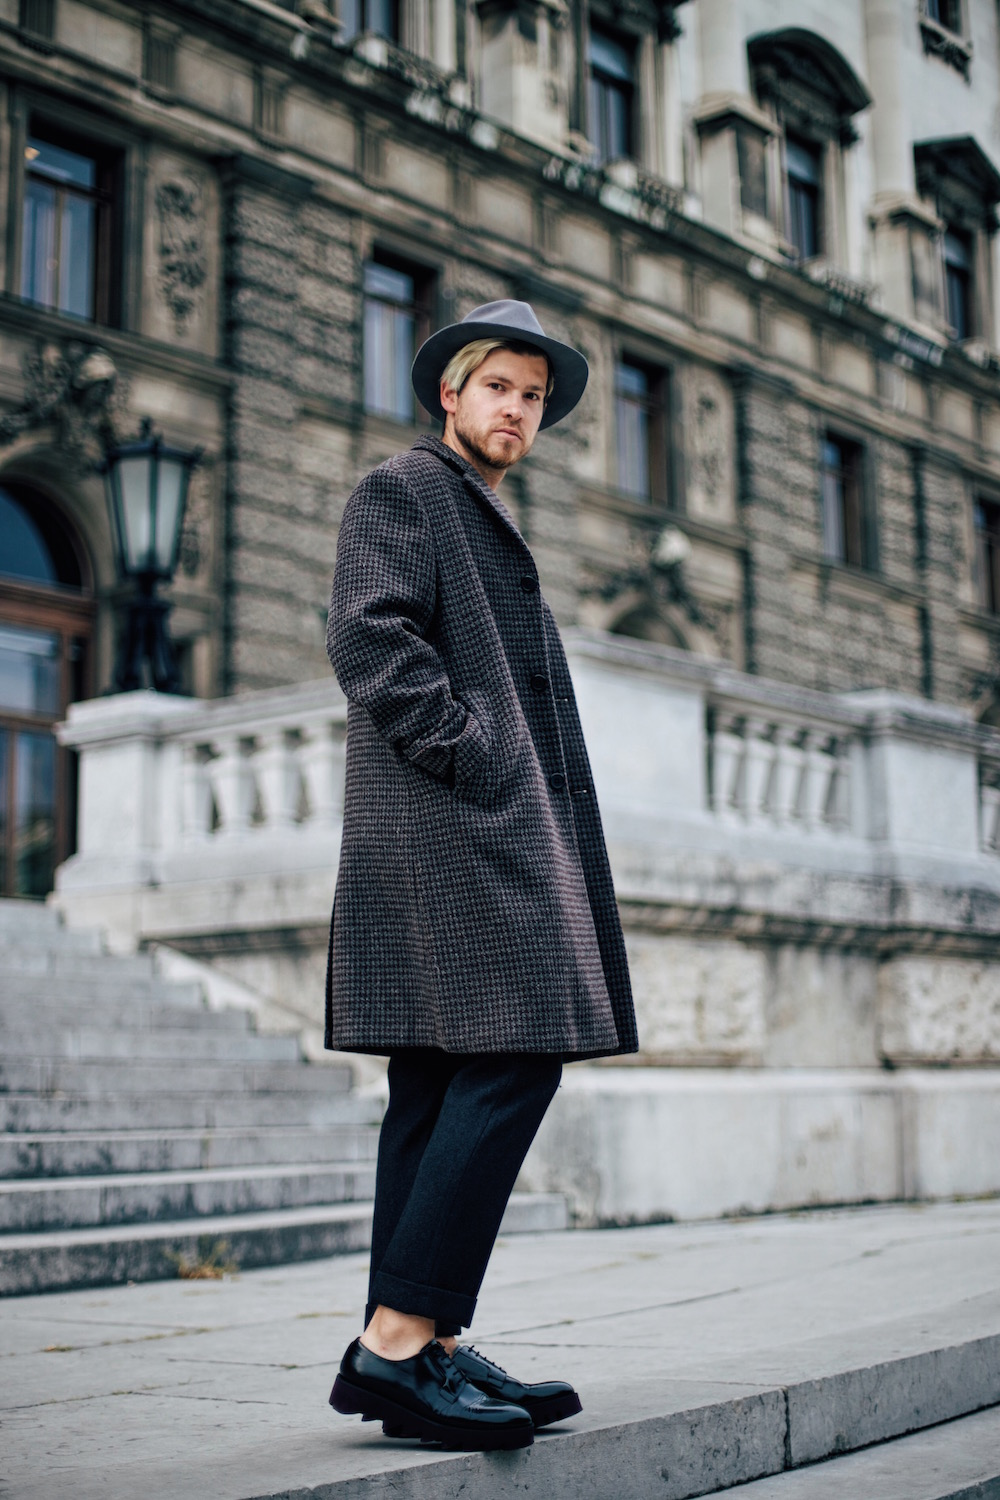 H&M STUDIO Autumn Winter 2016 Collection Men Outfit Meanwhile in Awesometown Austrian Mens Fashion and Lifestyle Blogger